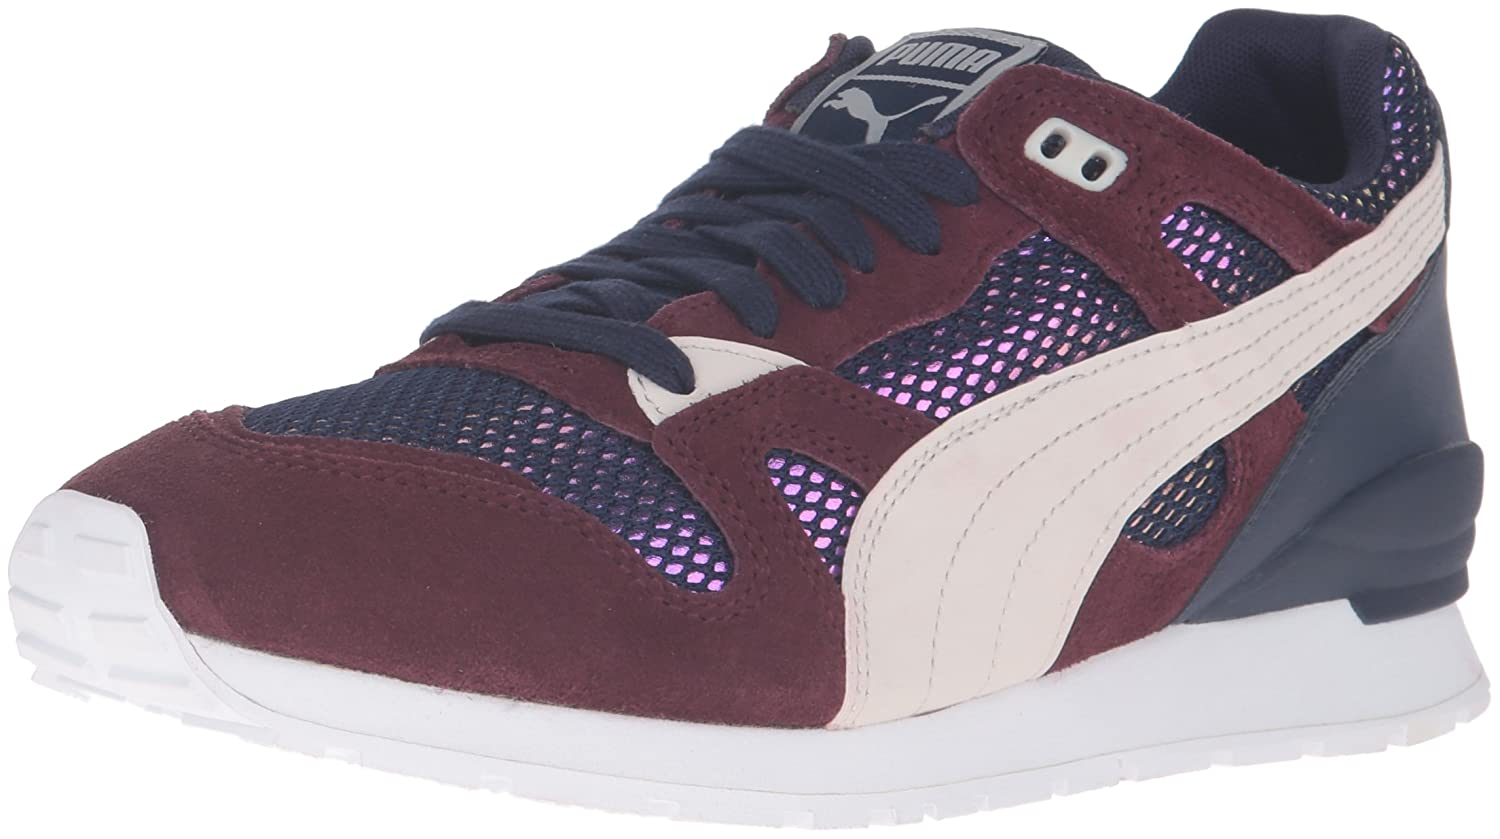 df641dbd9c9e8 PUMA Women's Duplex OG Remast DC4 Wn's Fashion Sneaker